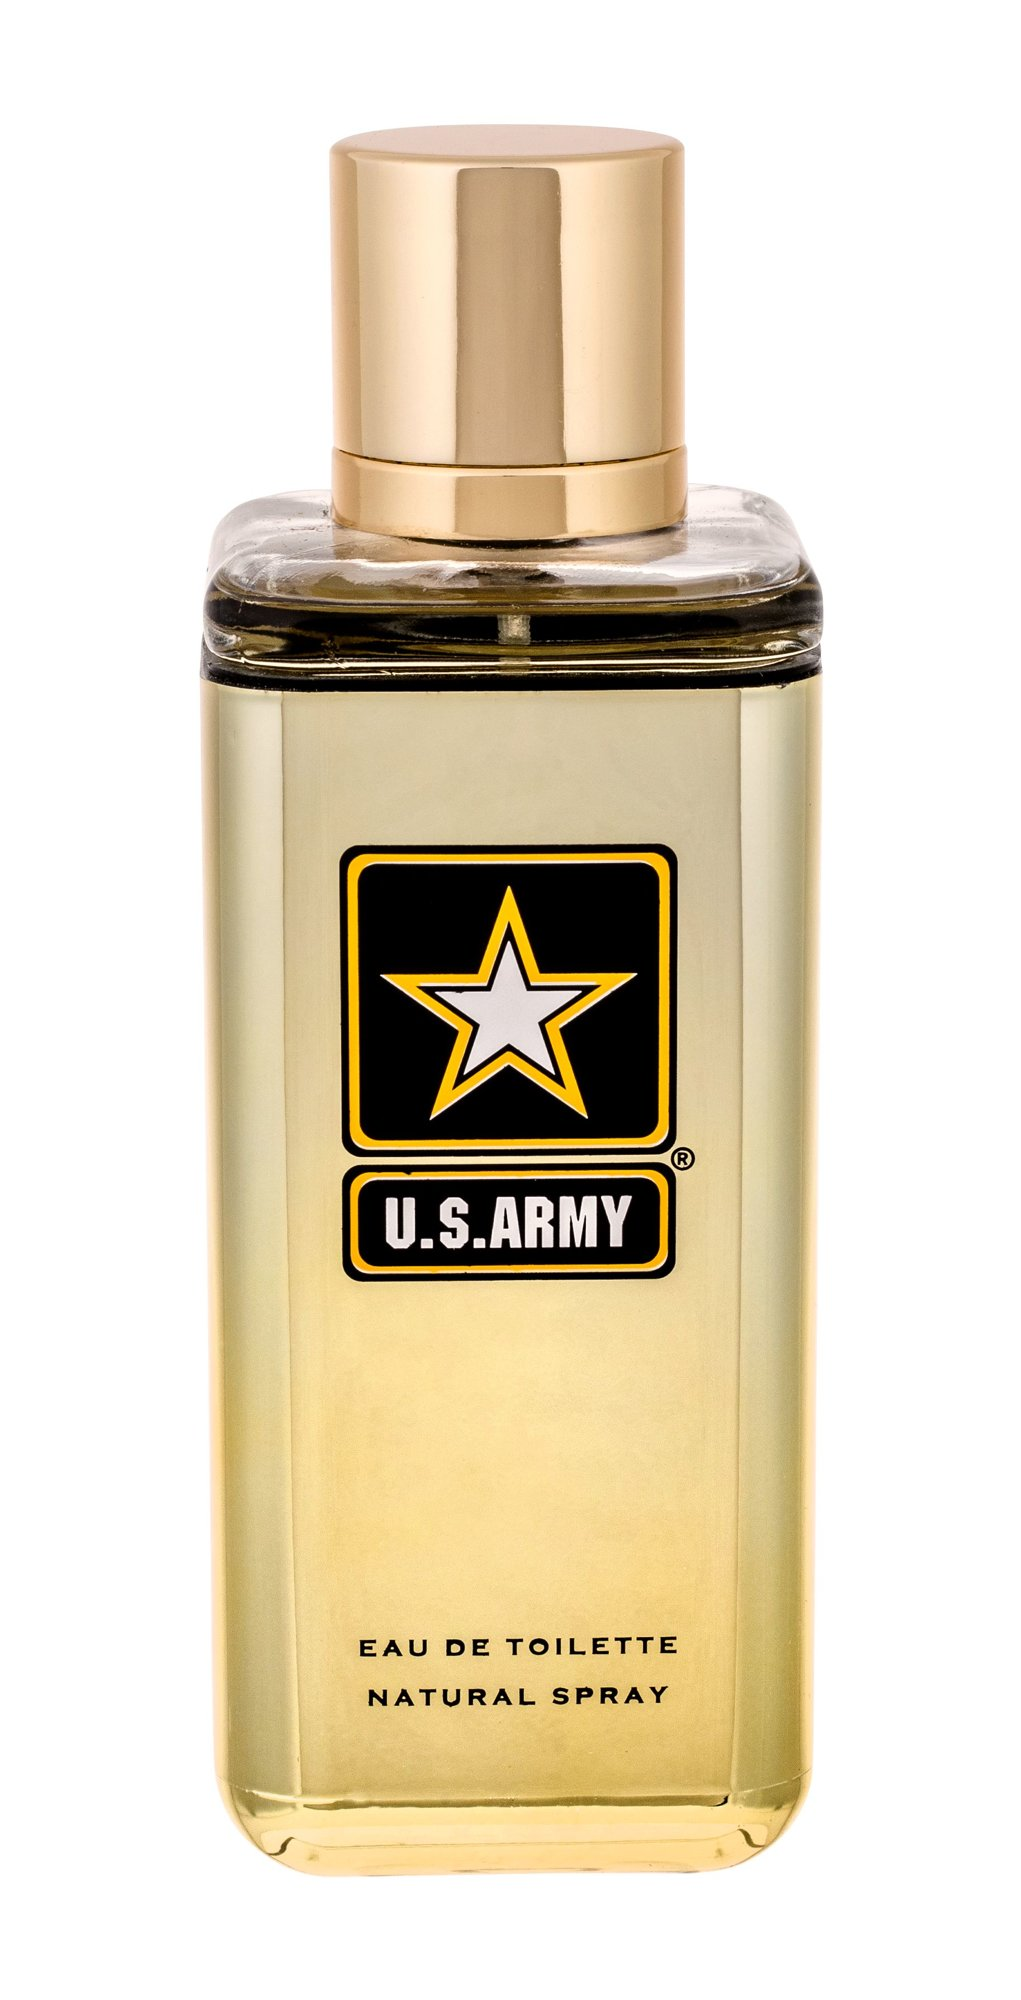 U.S.Army Gold EDT 100ml